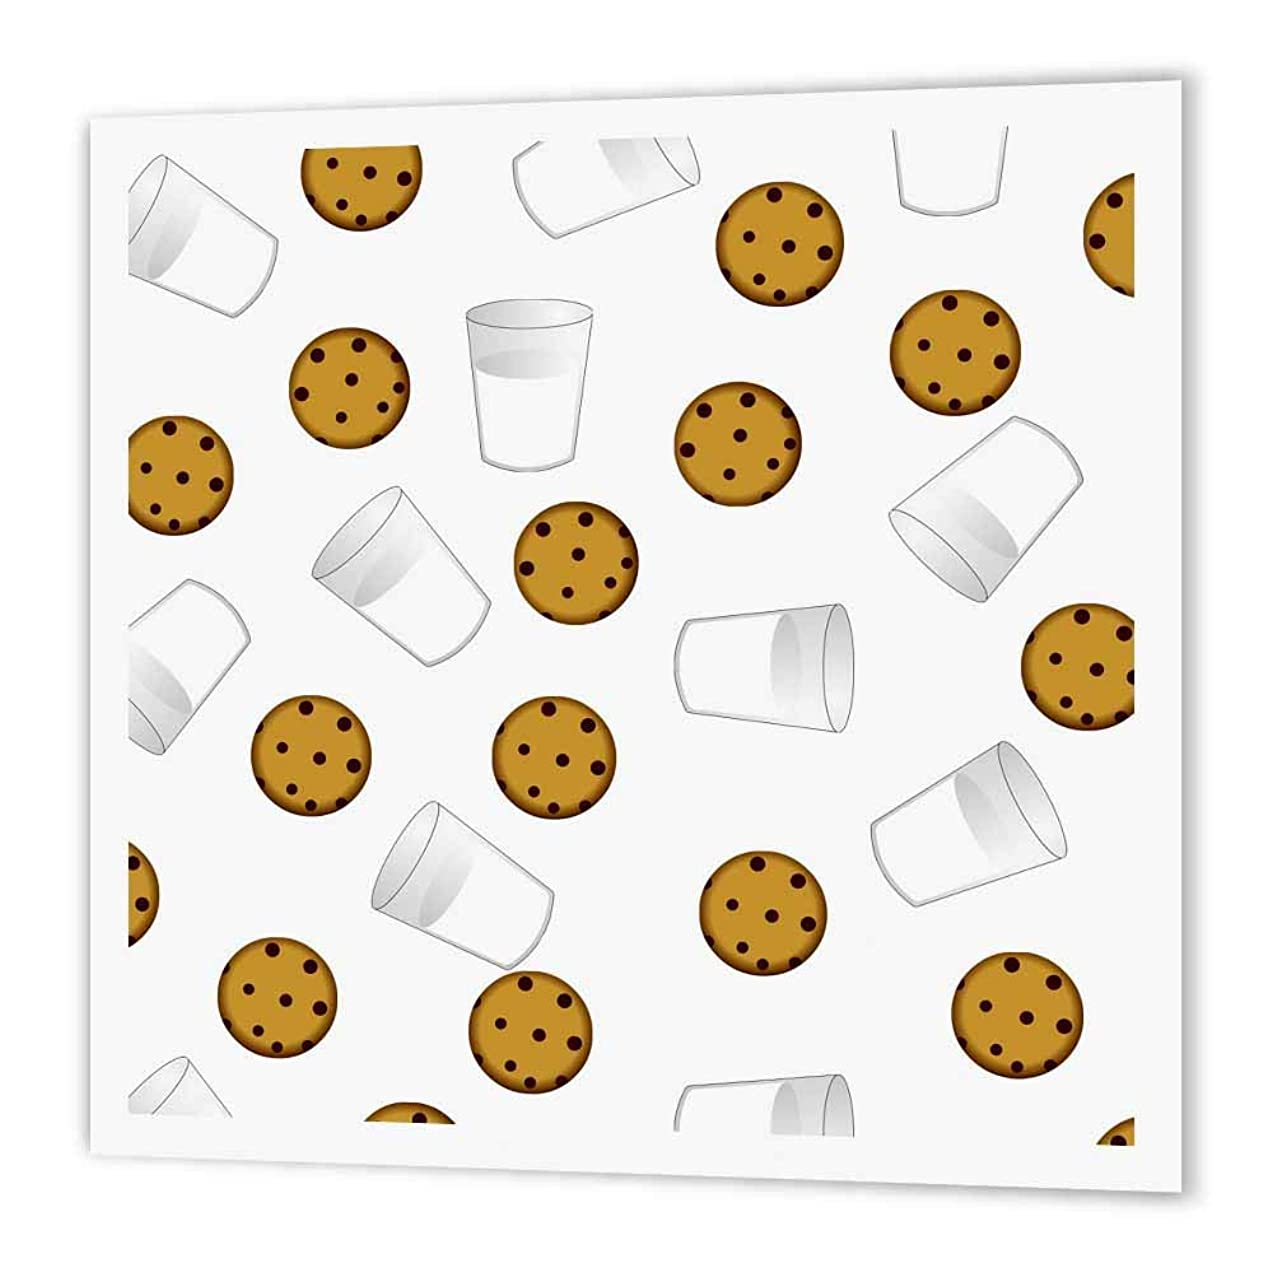 3dRose ht_43206_3 Cute Cartoon Milk & Chocolate Chip Cookies on White Iron on Heat Transfer Paper for White Material, 10 by 10